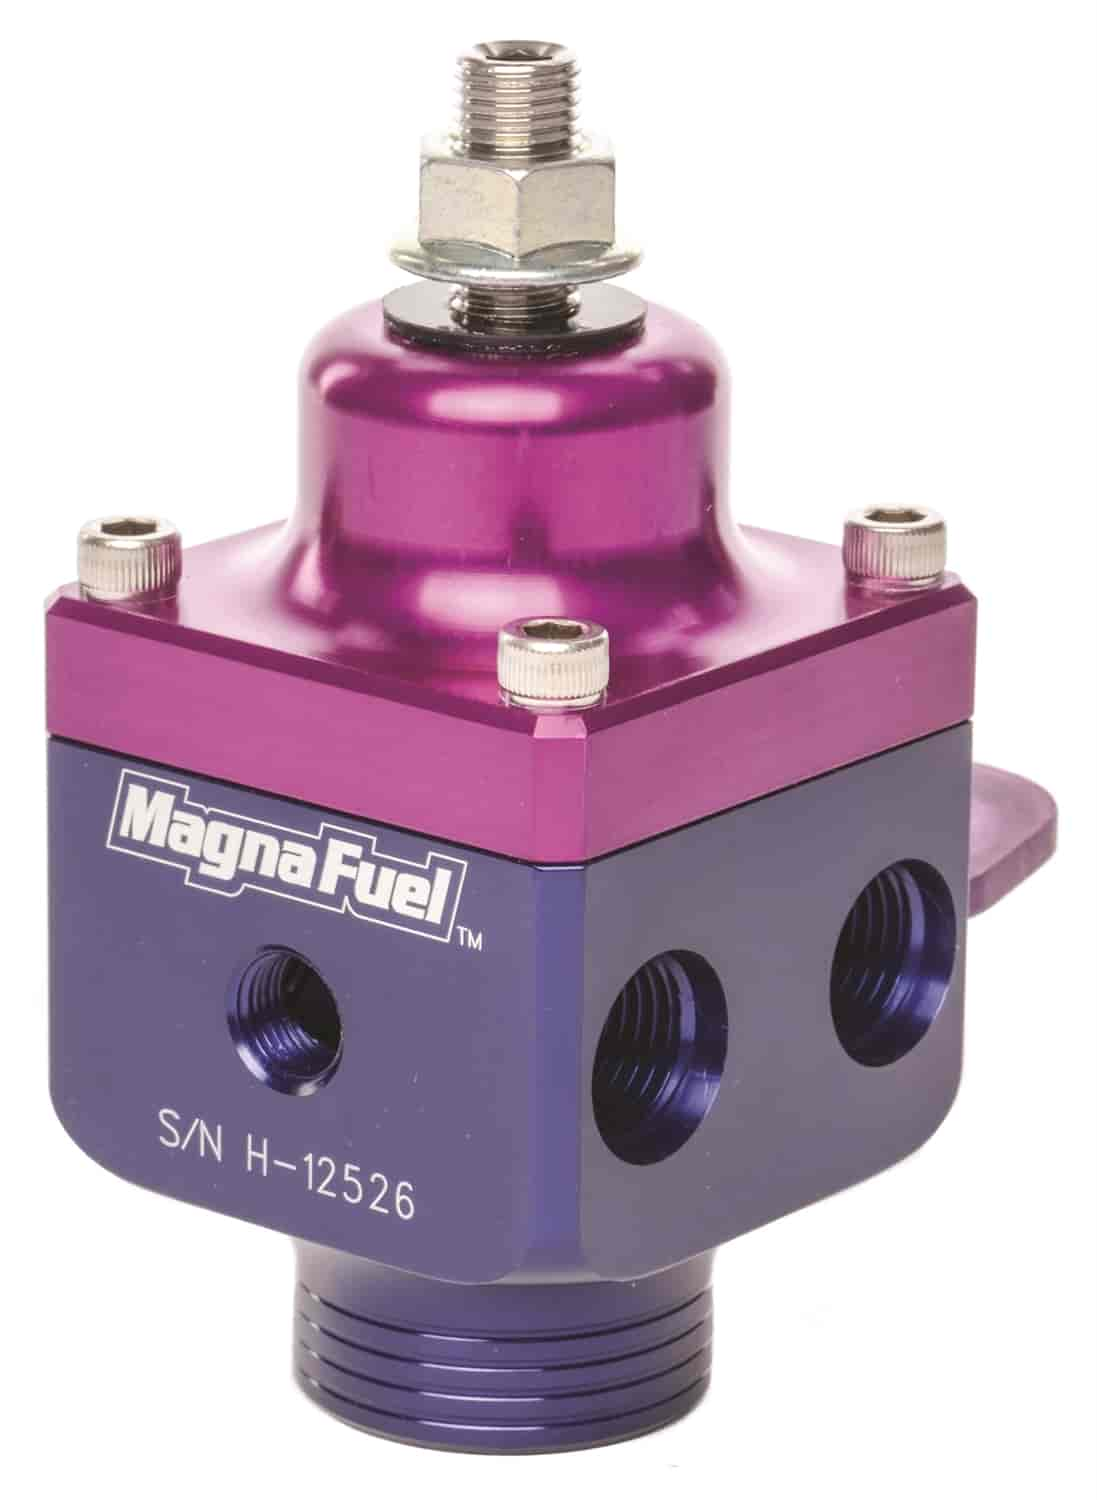 Magnafuel MP-9433 - MagnaFuel Carbureted Regulators & Fittings